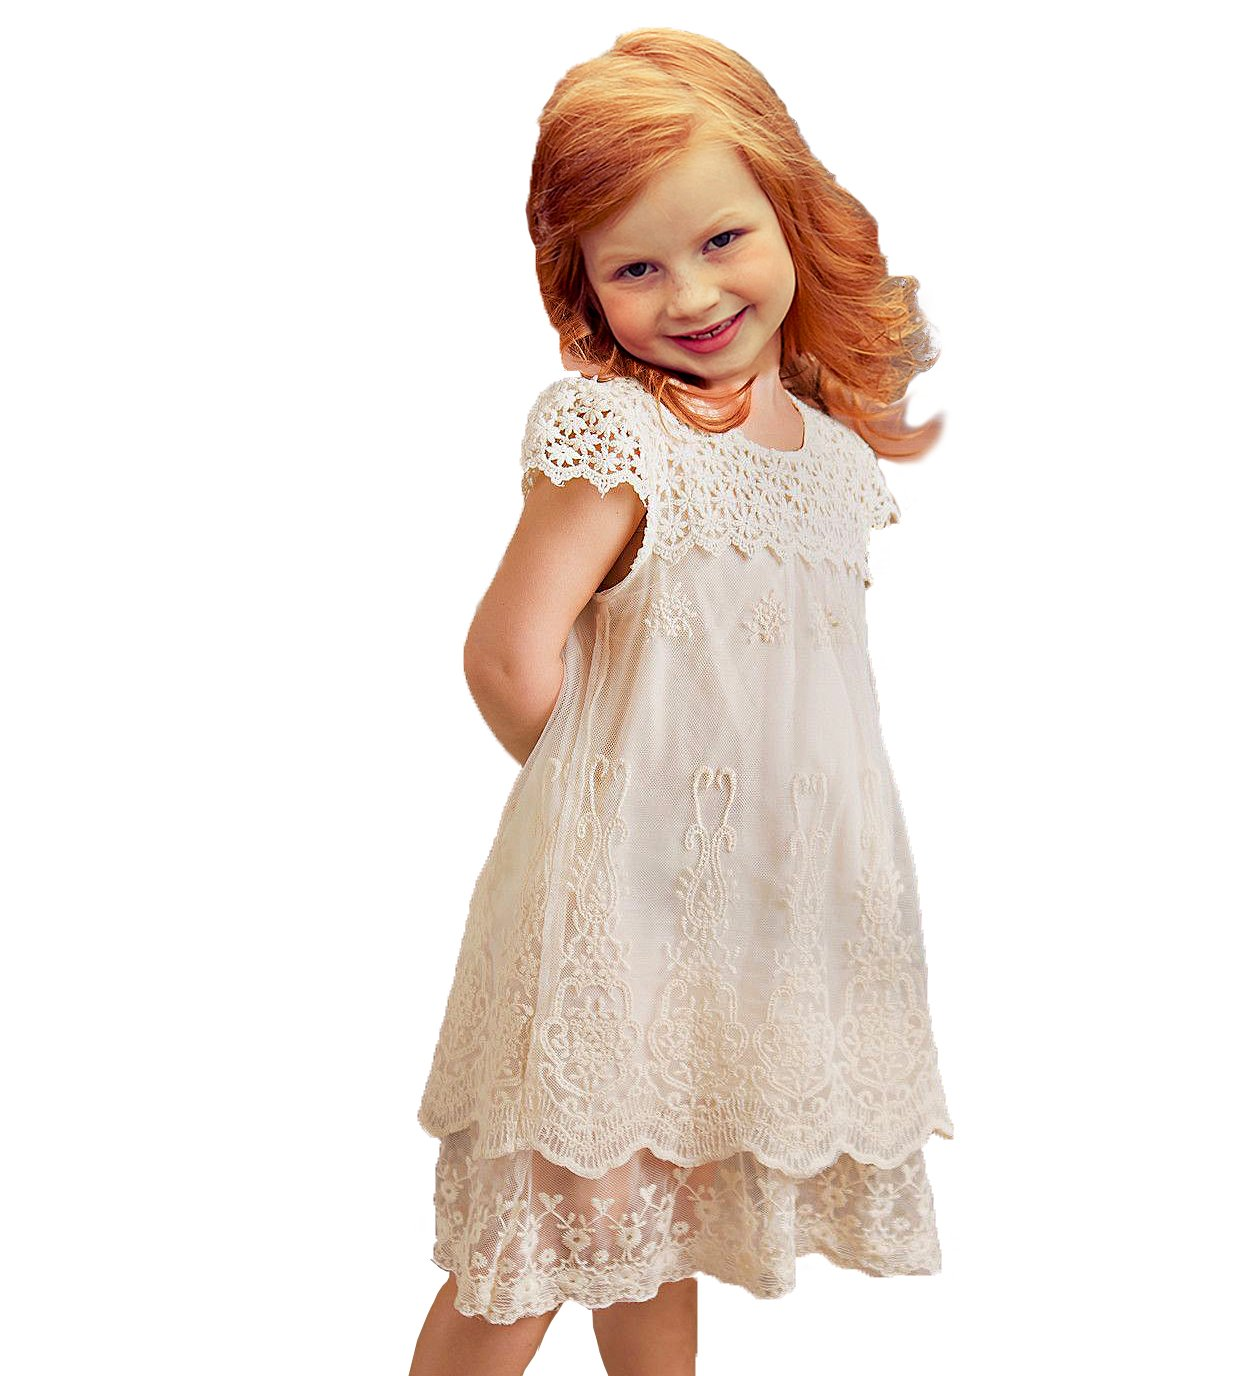 Toddler Dresses 3t White Lace Amazon